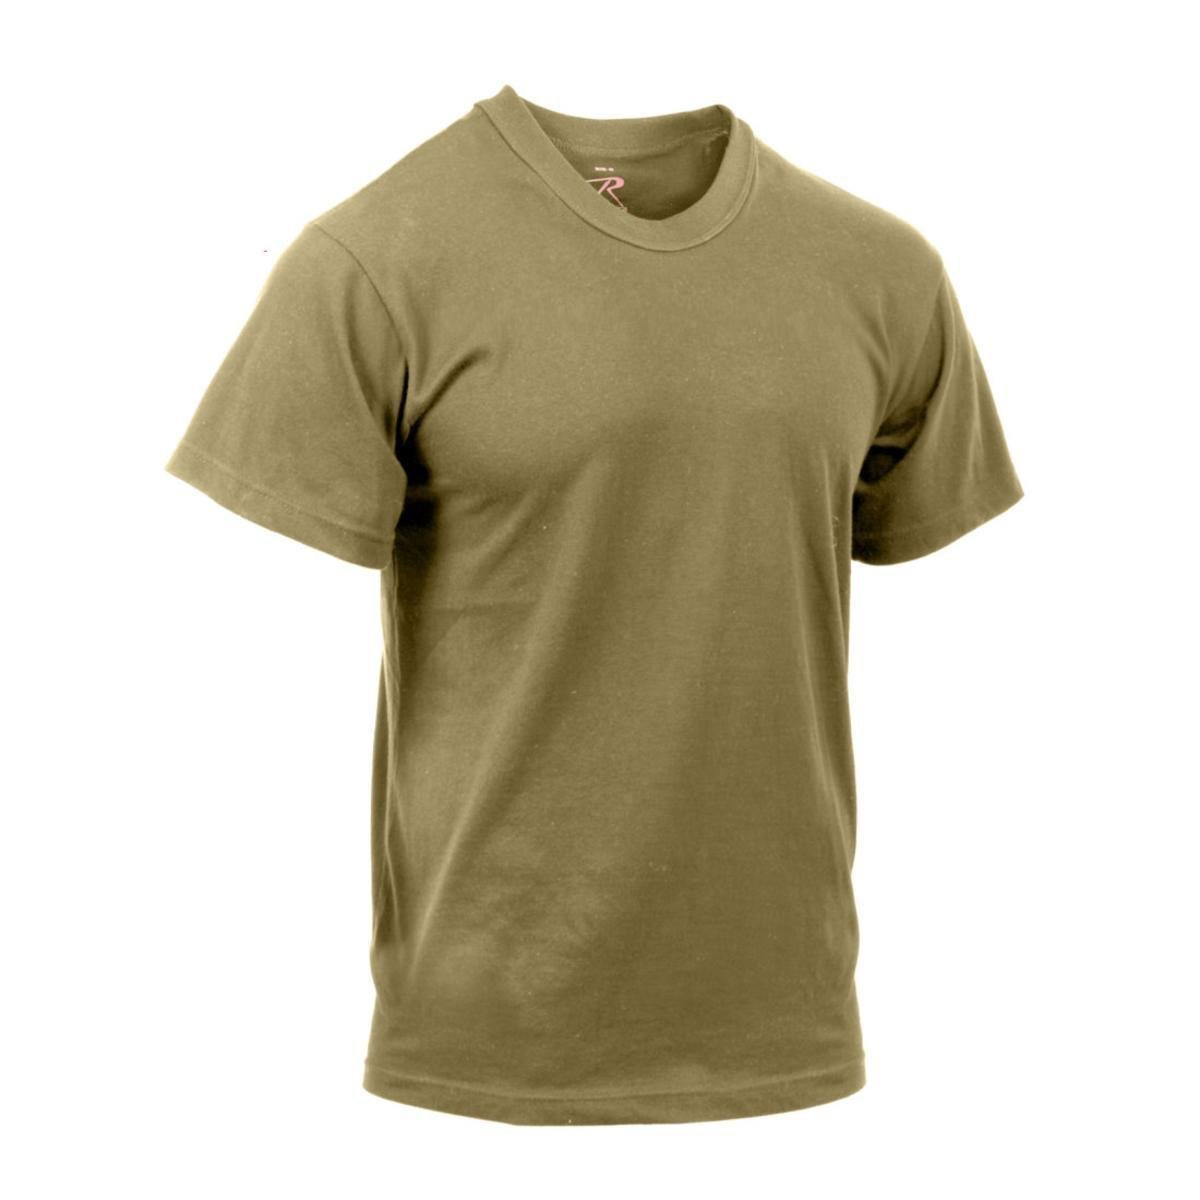 3-Pack of Rothco AR 670-1 Compliant Coyote Brown Military T-Shirts, XL